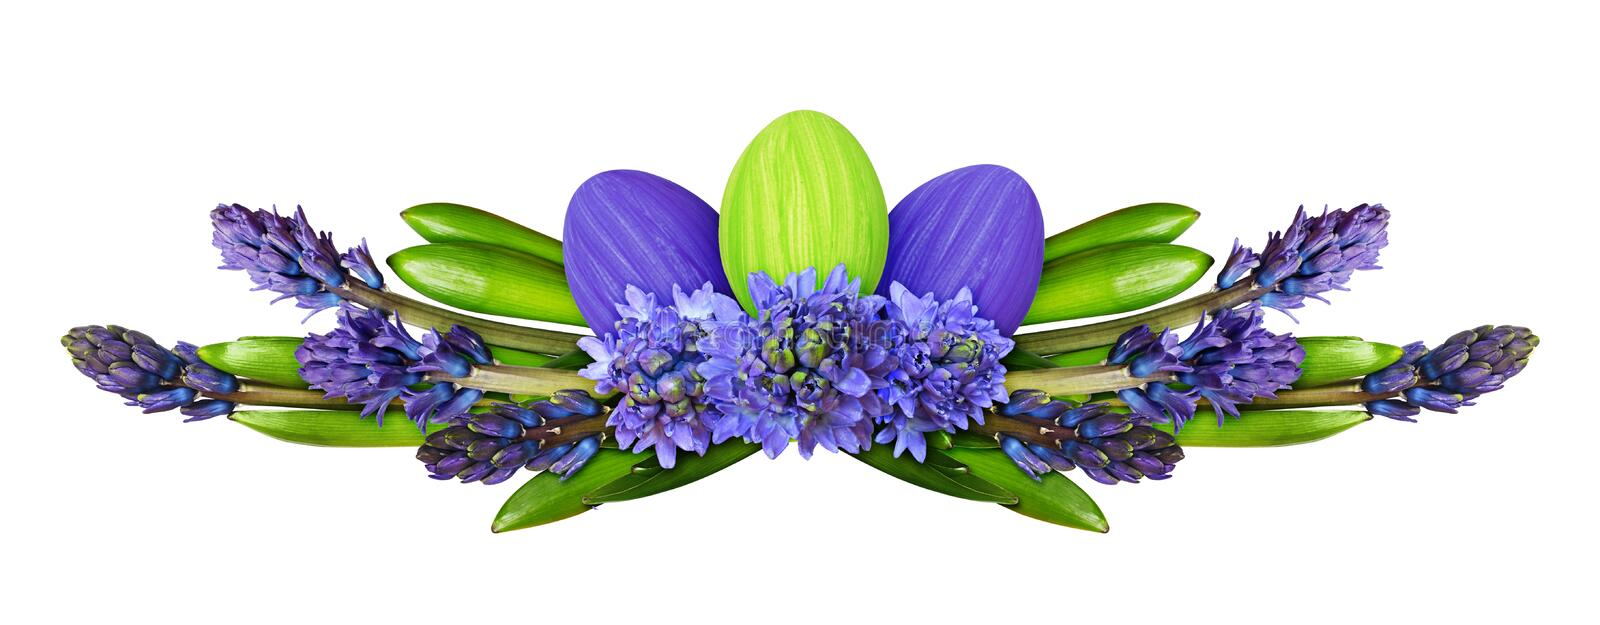 Blue hyacinth flowers and leaves with Easter painted eggs in a line arrangement royalty free stock image